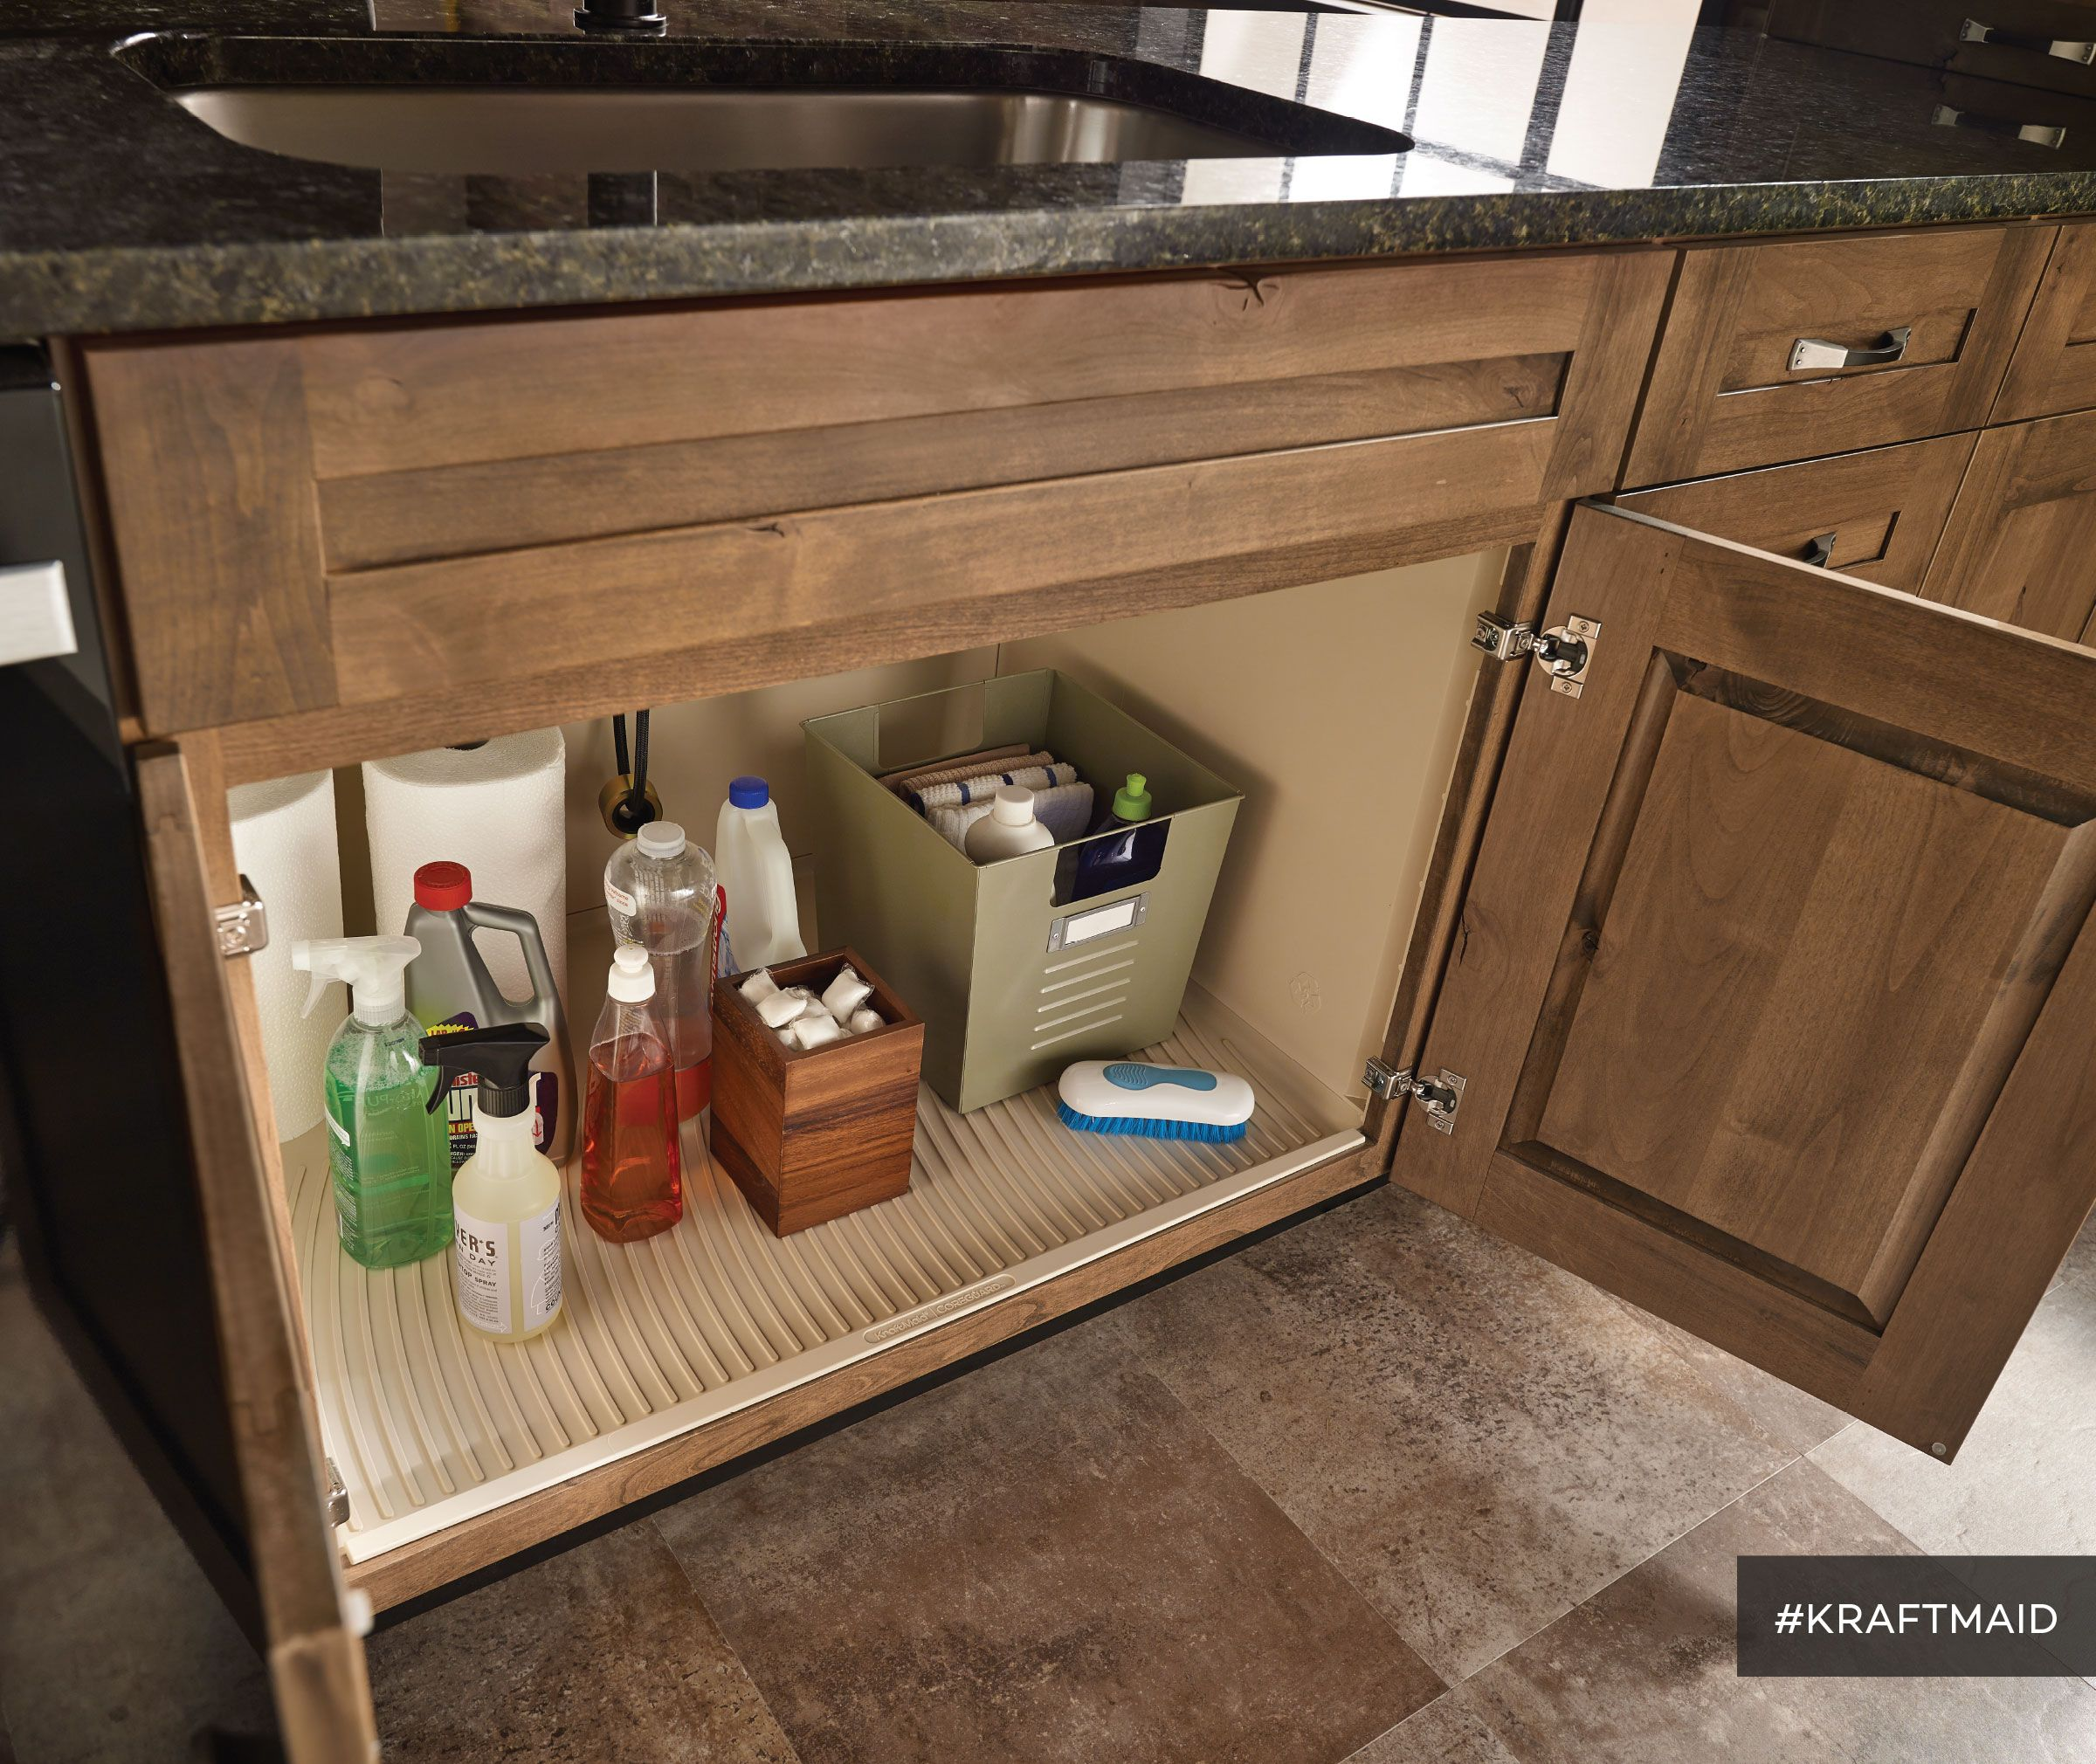 Kraftmaid Kitchen And Bathroom Cabinetry It Becomes You Alder Kitchen Cabinets Kraftmaid Kitchens Kitchen Design